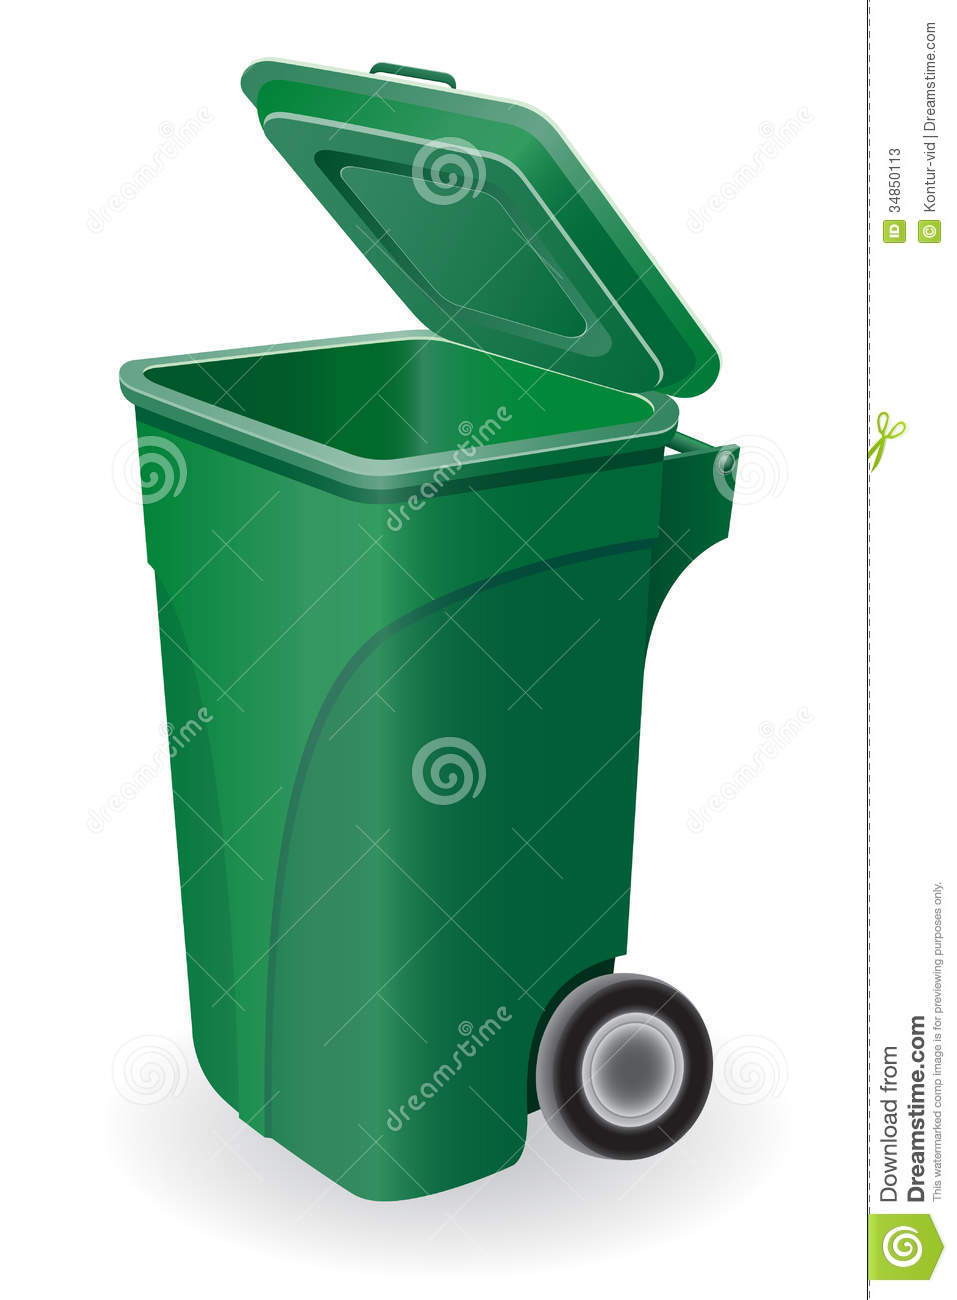 Images Stock Rubbish Trash Can Vector Illustration Stock Vector Illustration